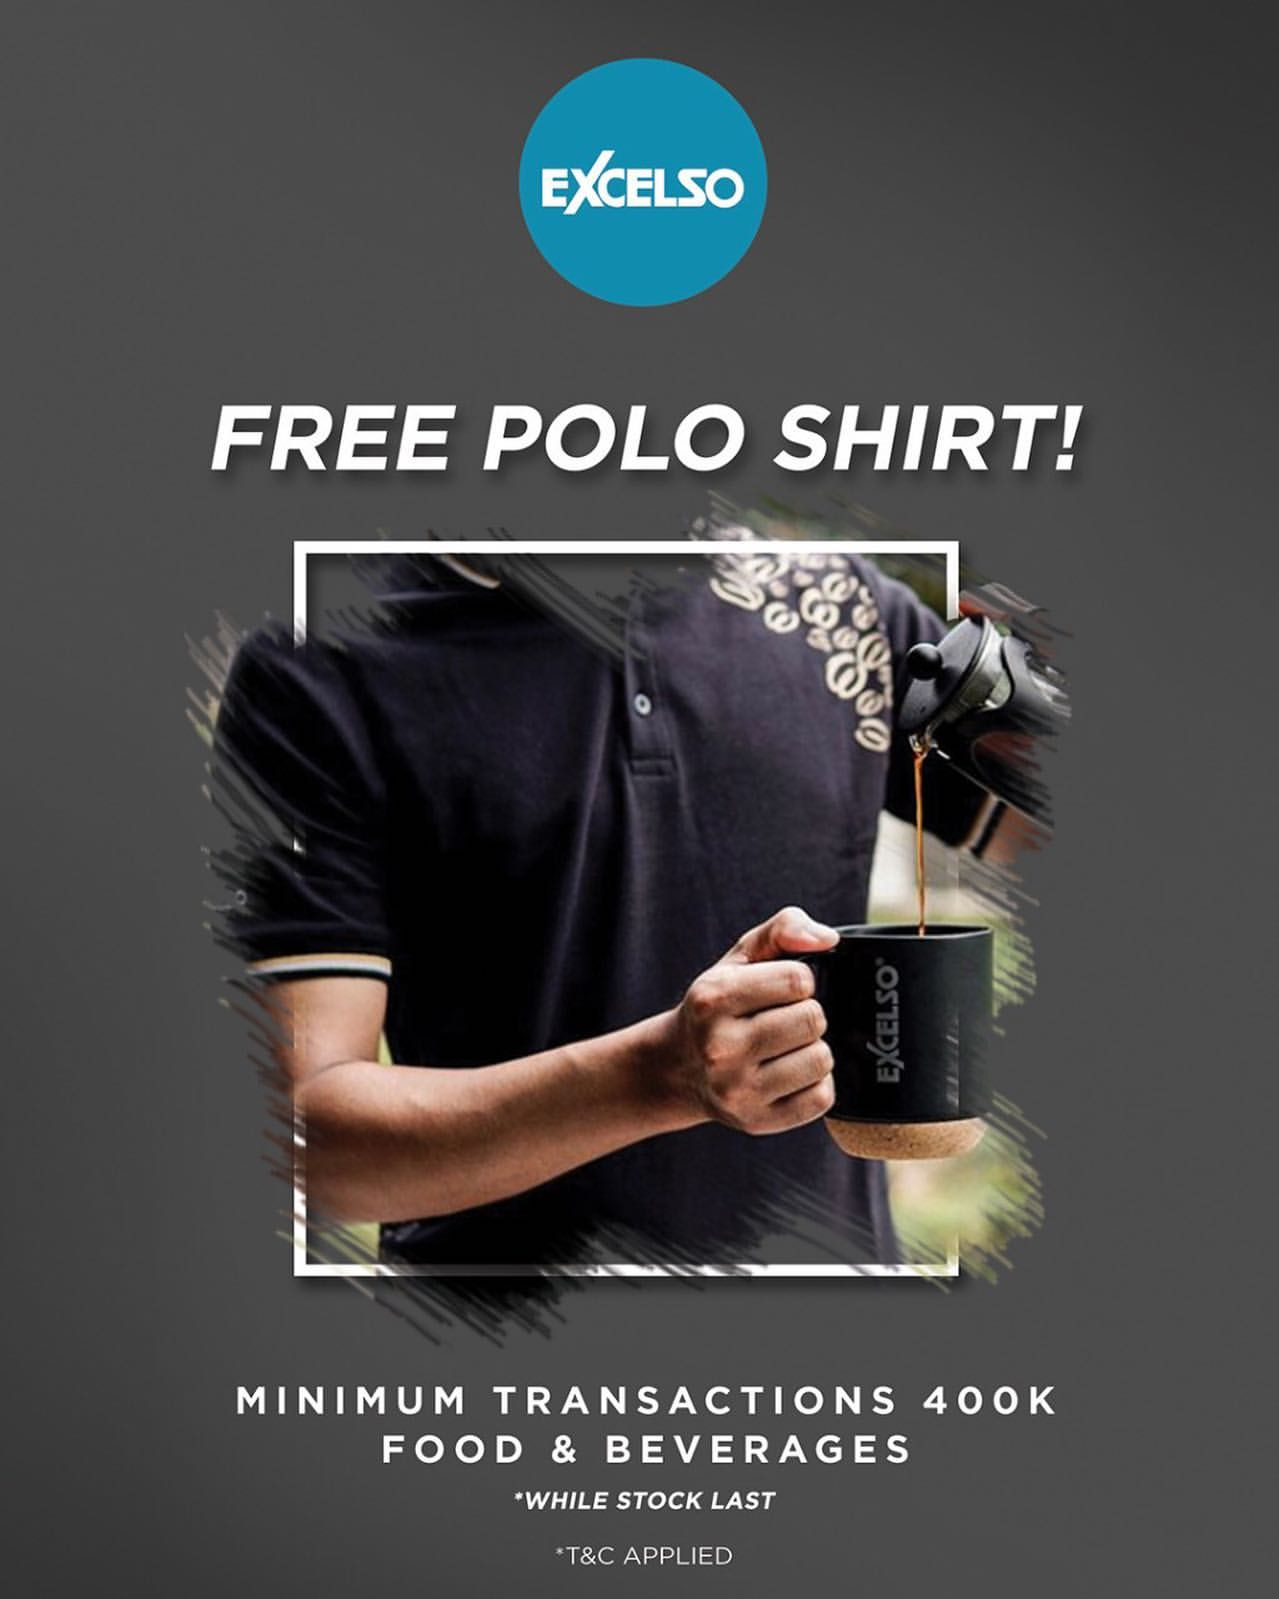 EXCELSO Promo Free Polo Shirt with minimum transactions 400 K